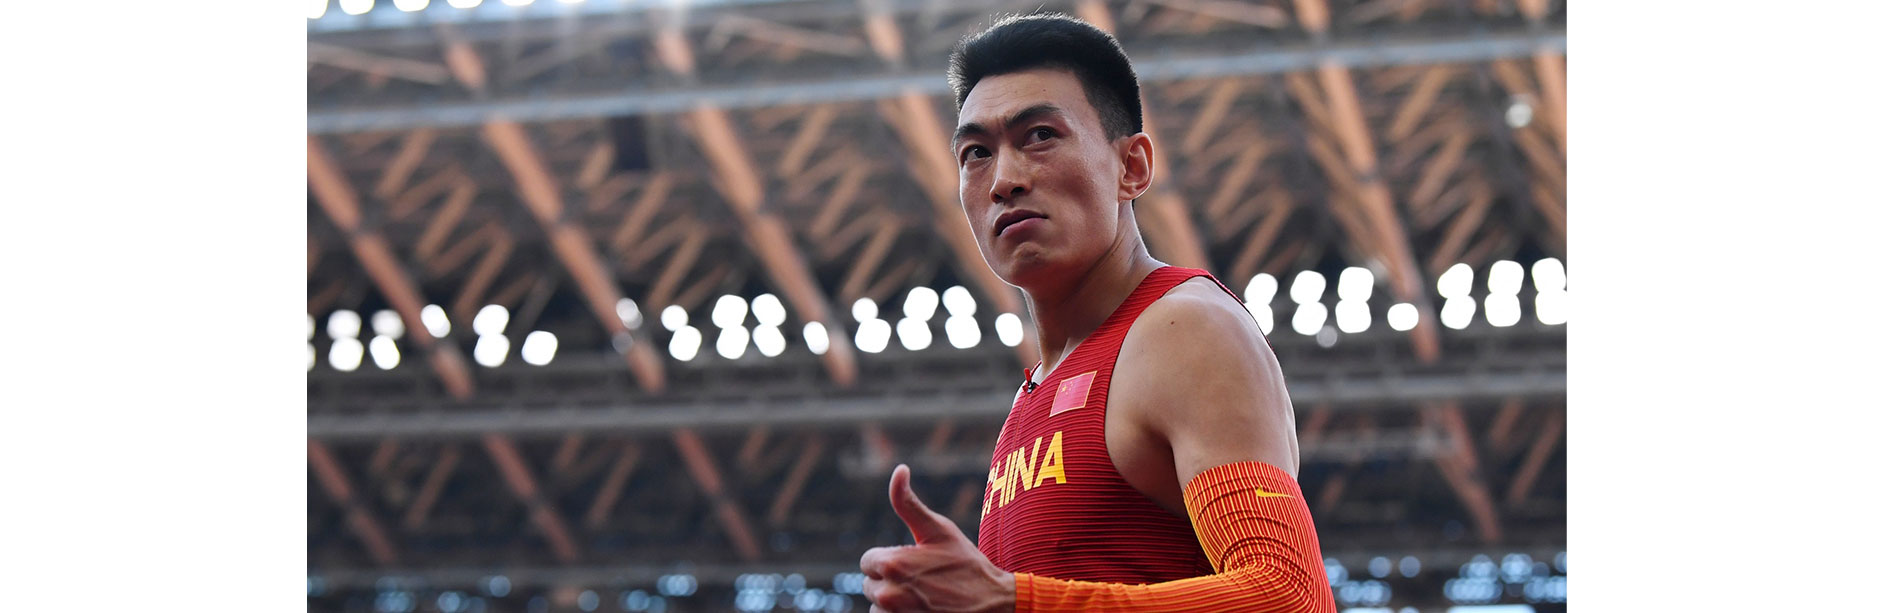 Feature: Chinese triple jumper Zhu Yaming aims further after winning silver at Tokyo Olympics